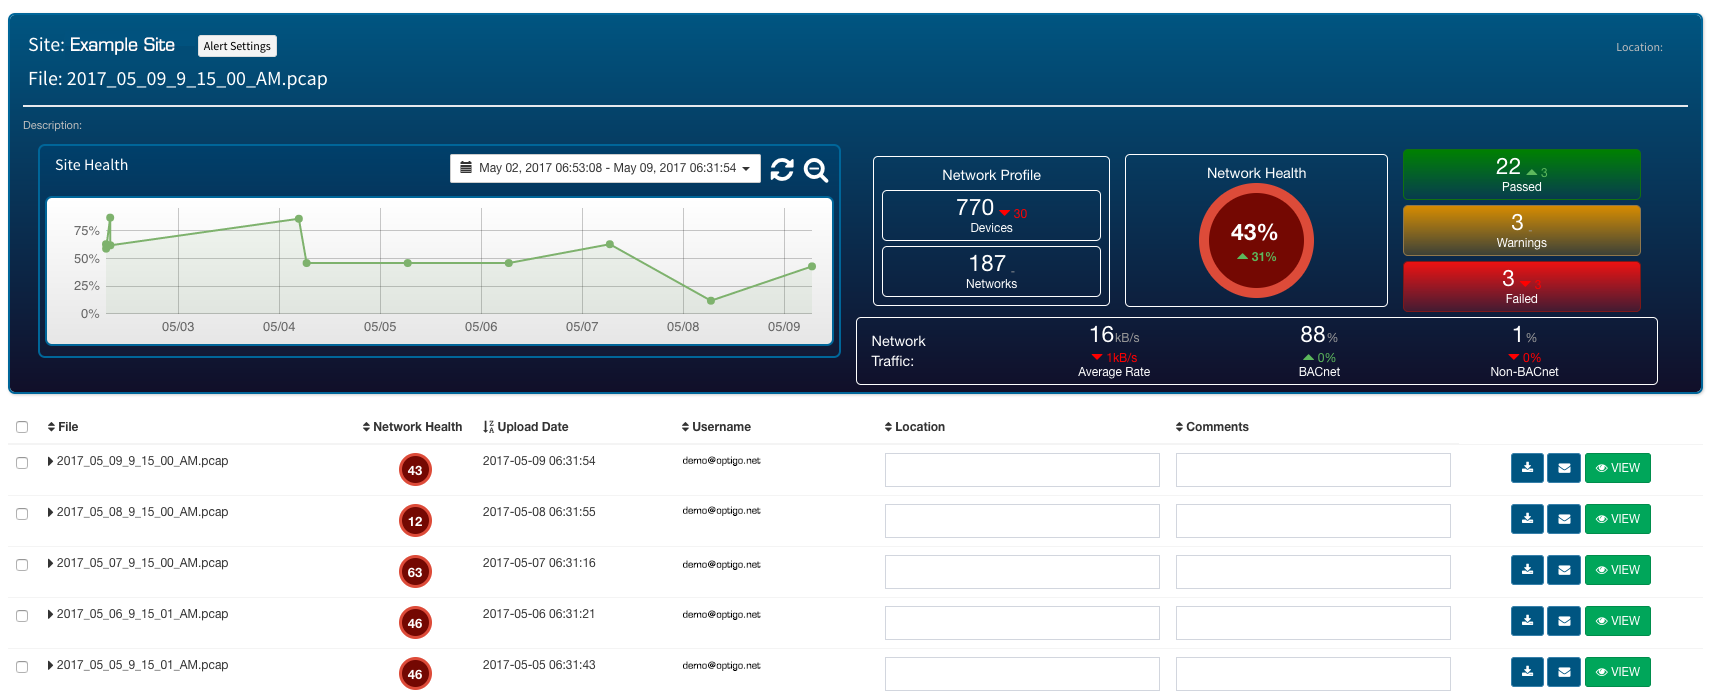 VisualBACnet's BACnet Site Monitoring for your smart building